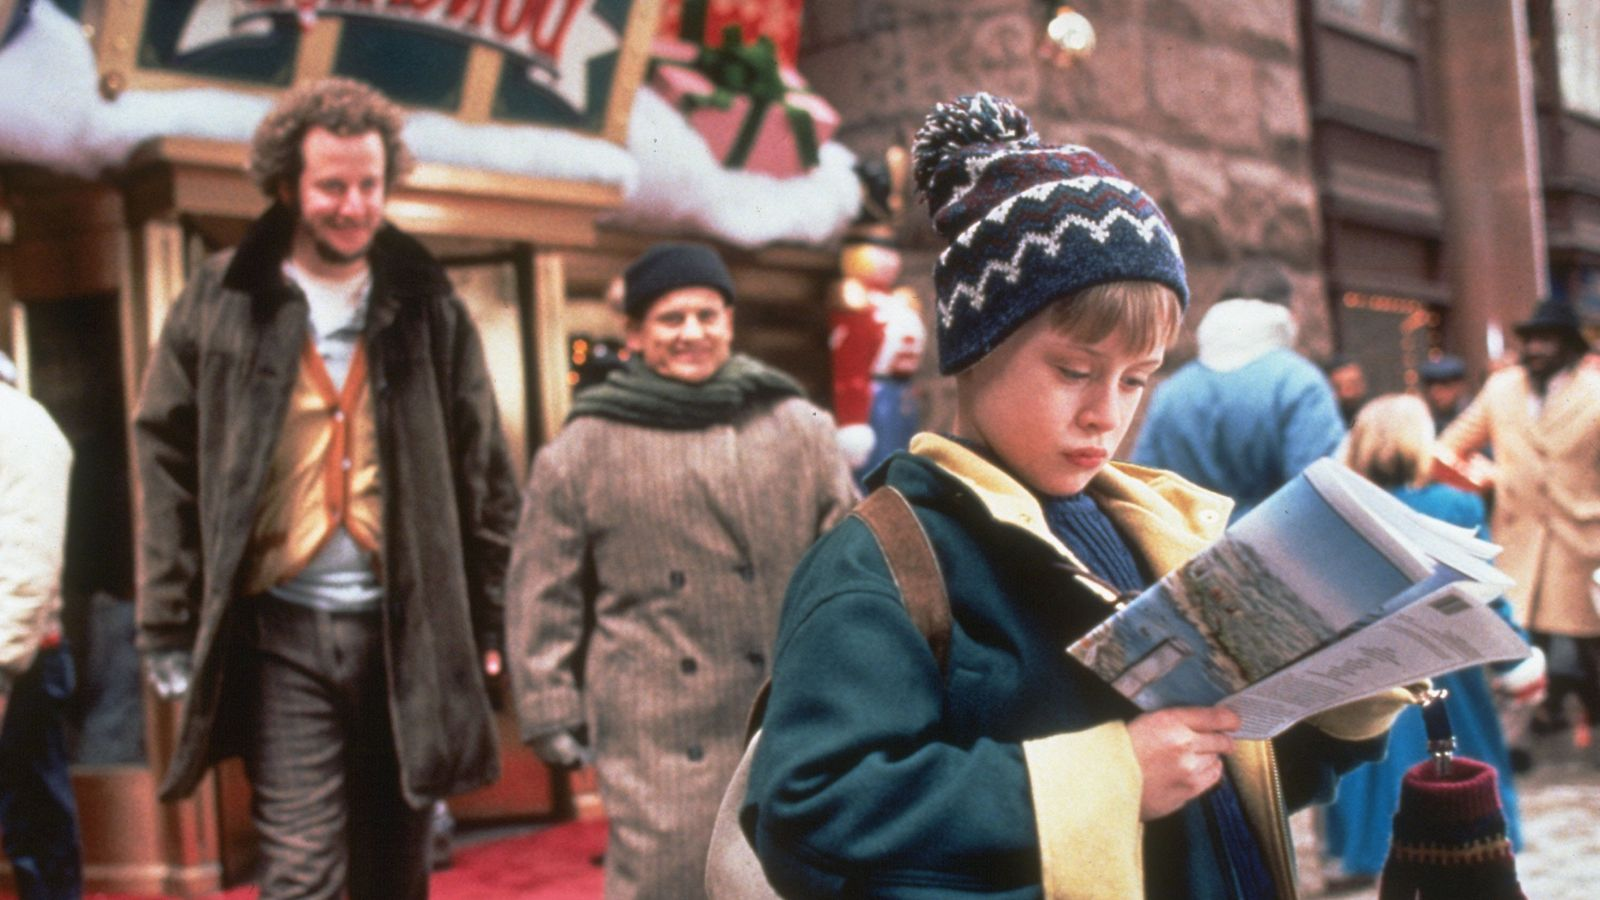 Broadcaster defends decision to cut Trump's Home Alone 2 cameo - EpicNews